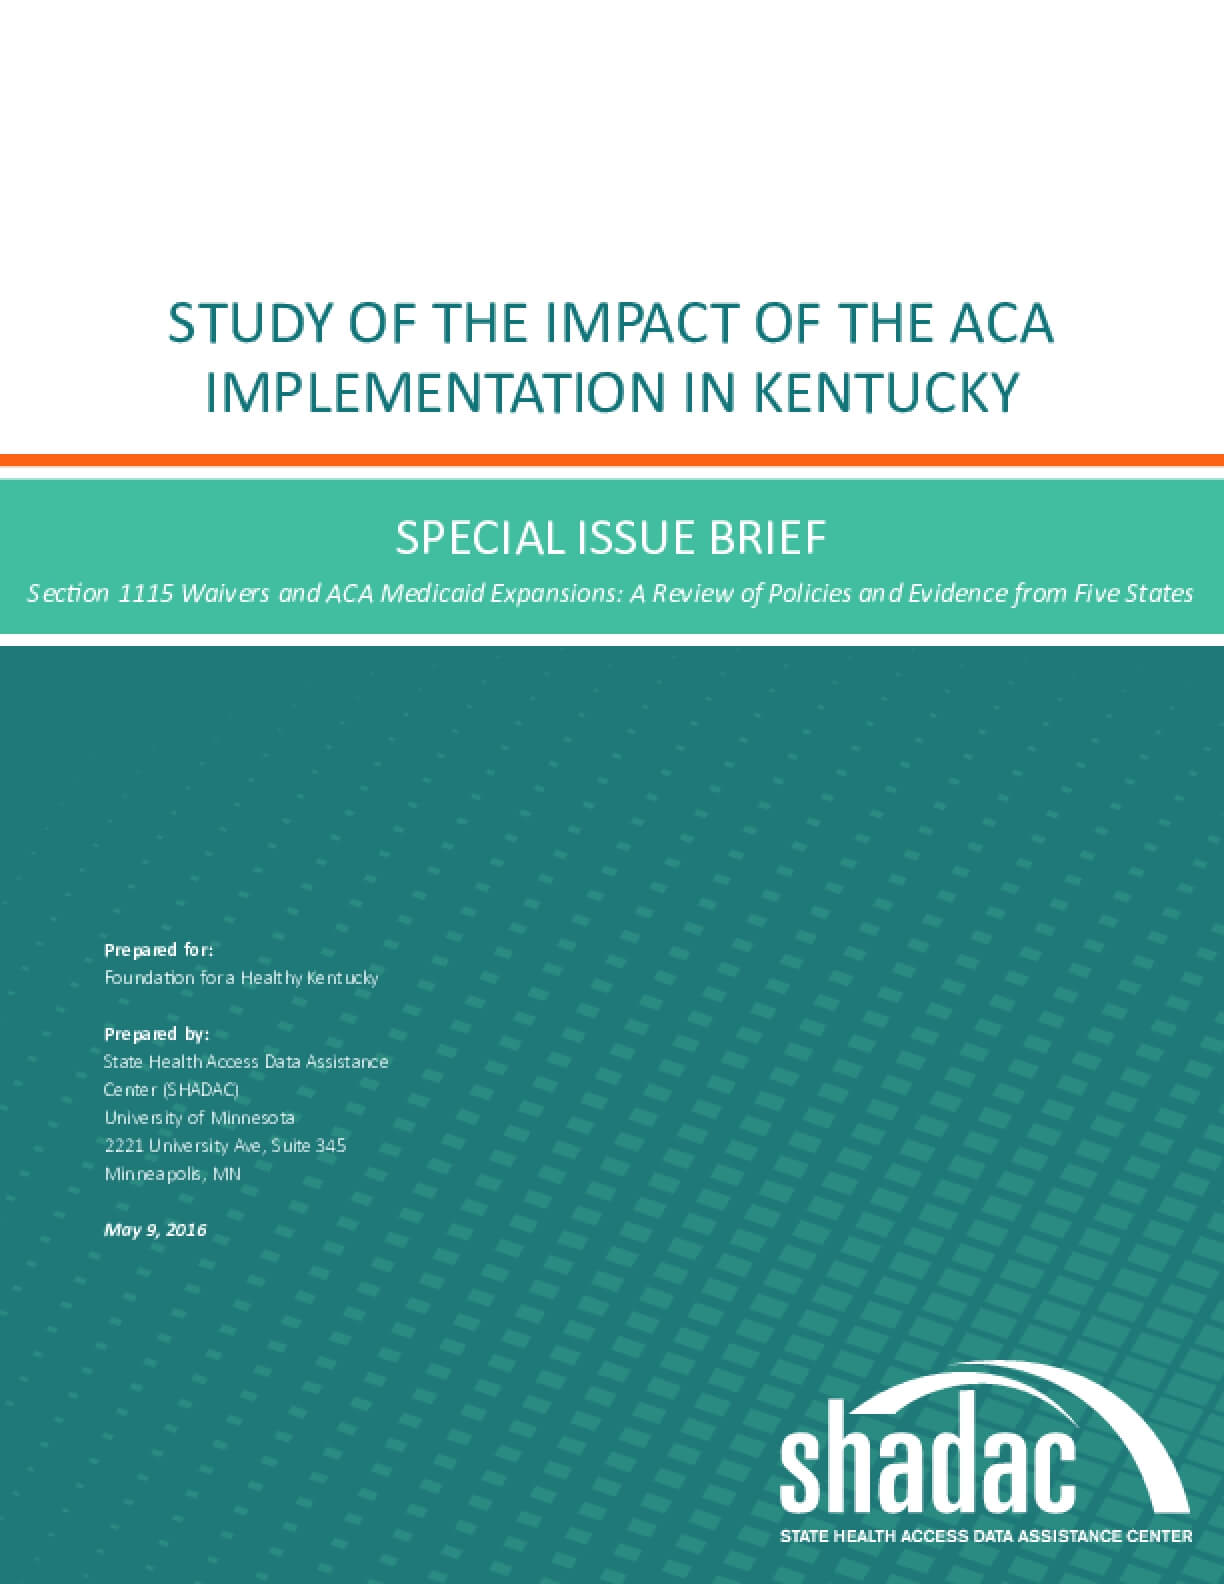 Study of the Impact of the ACA Implementation in Kentucky: Special Issue Brief